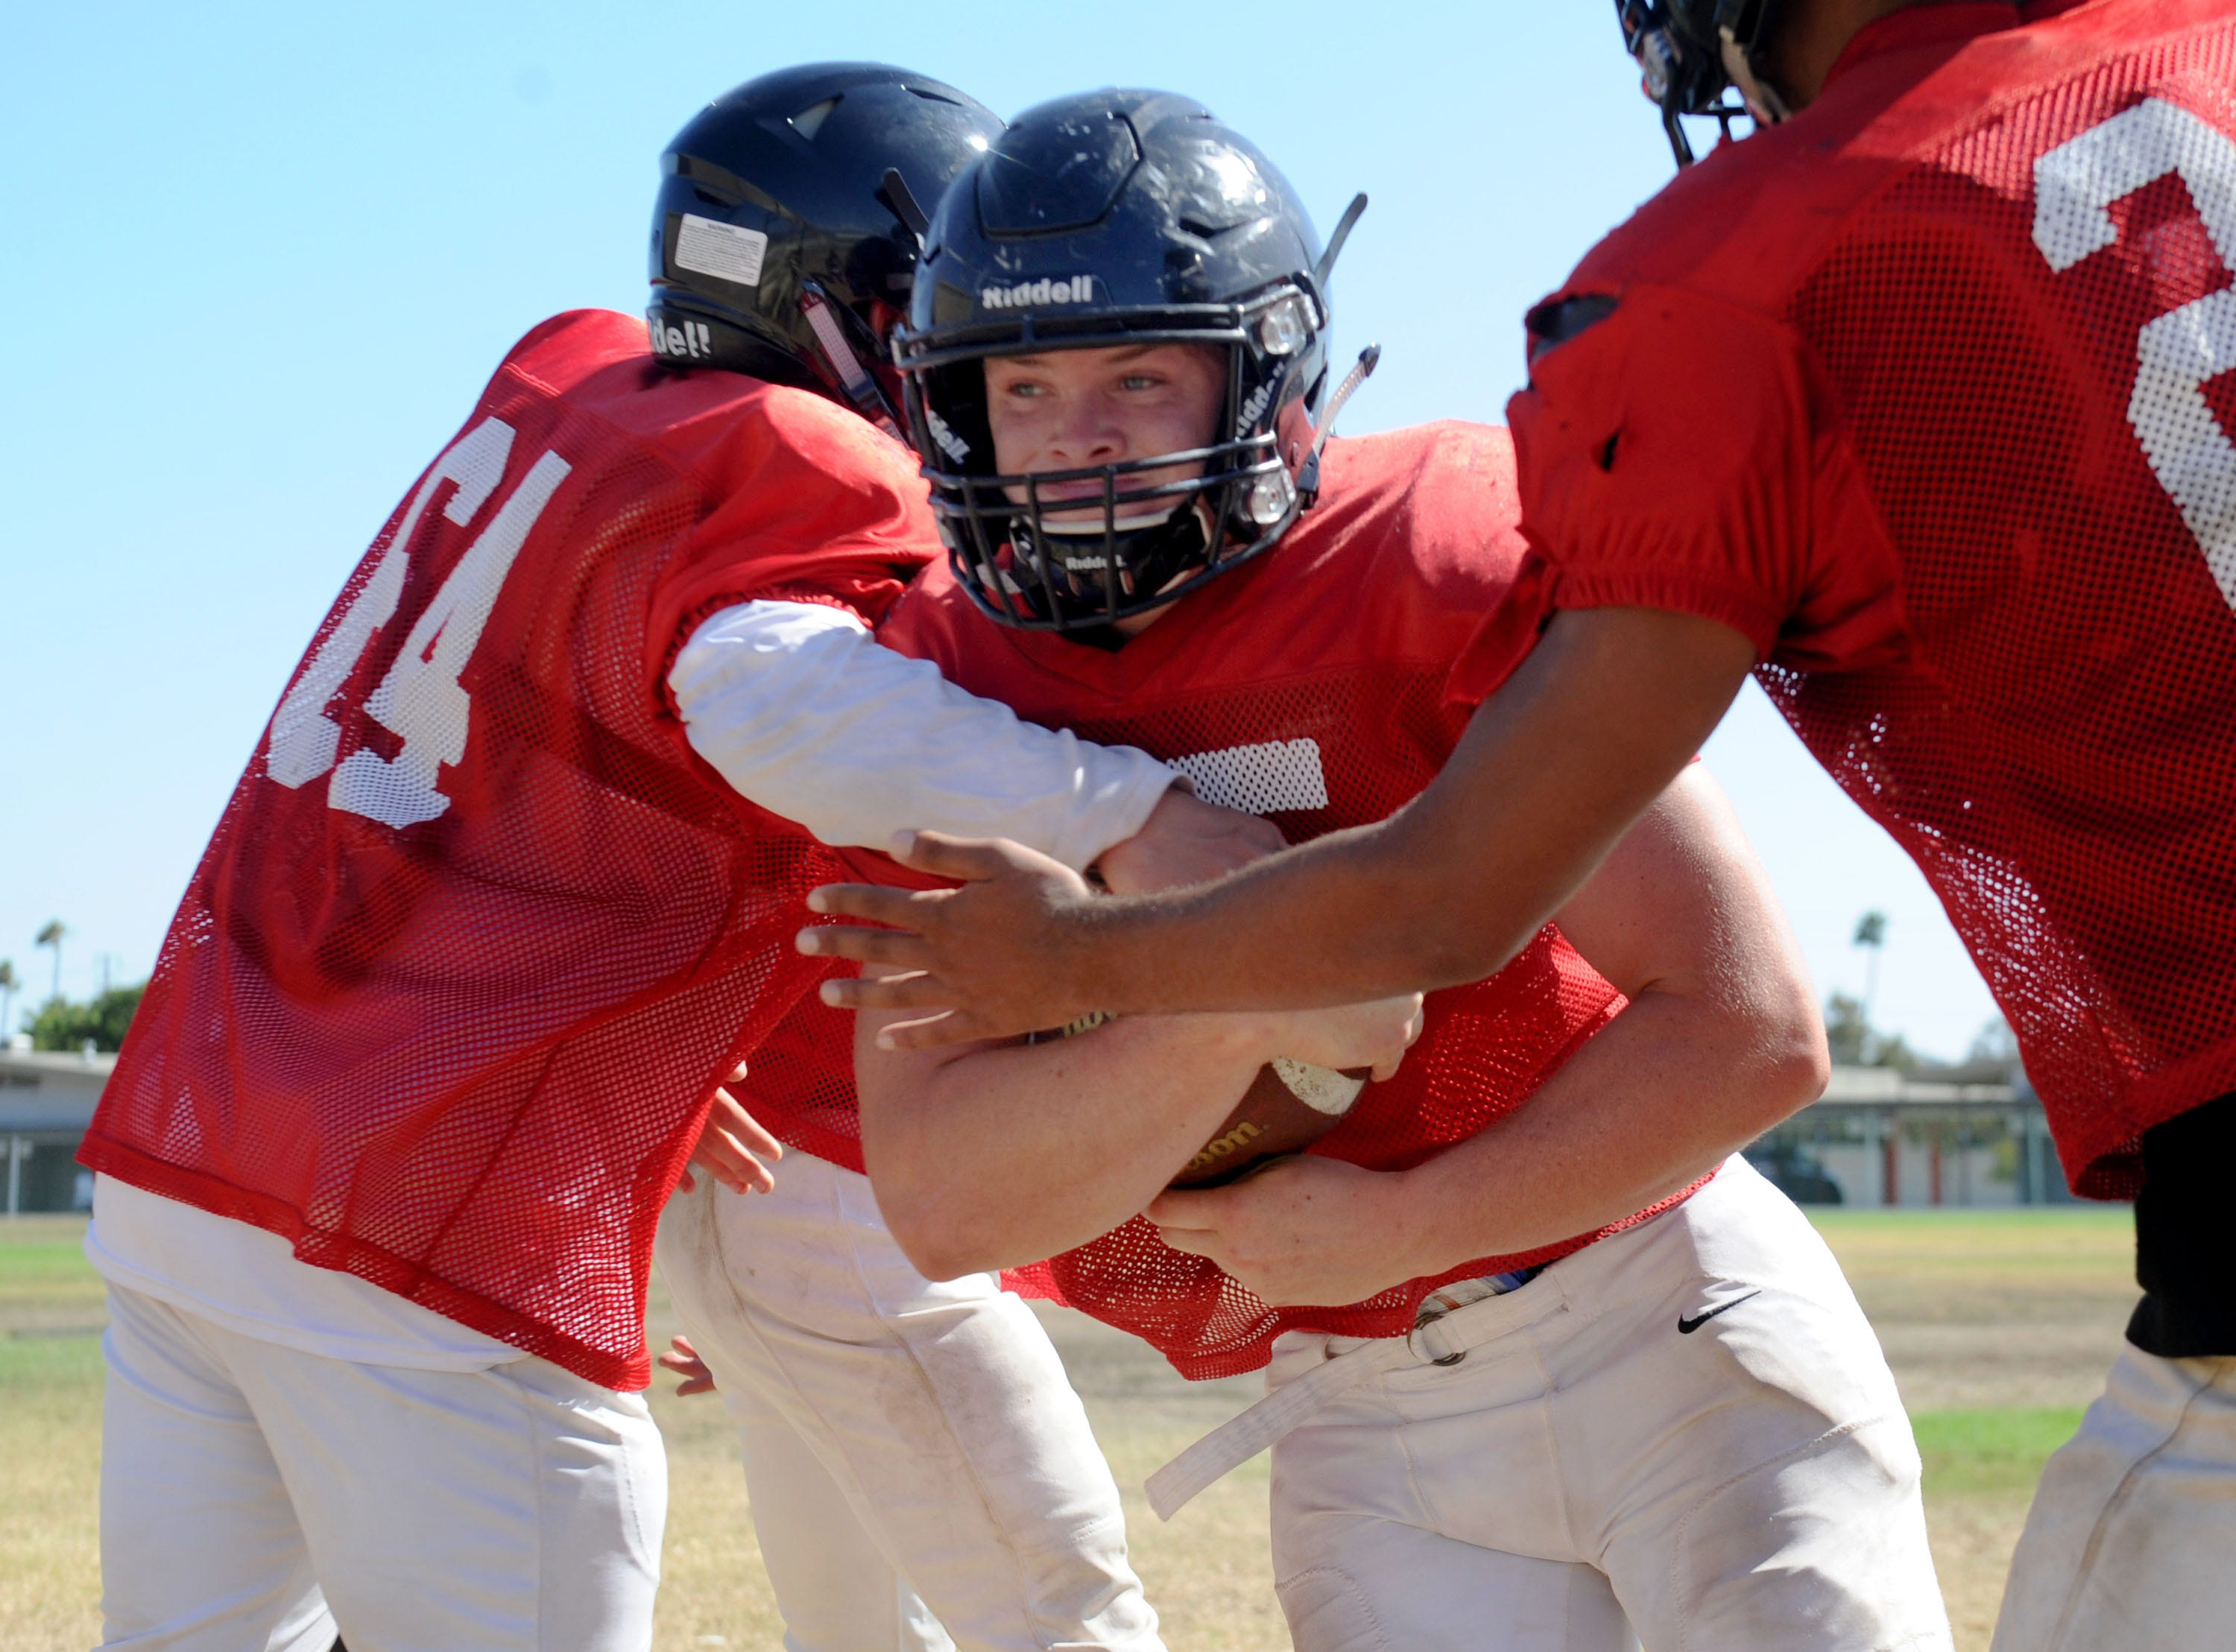 Running back Blake Kytlica tries to break through his teammates during Rio Mesa's practice. The Spartans play at Camarillo on Friday night in a season opener